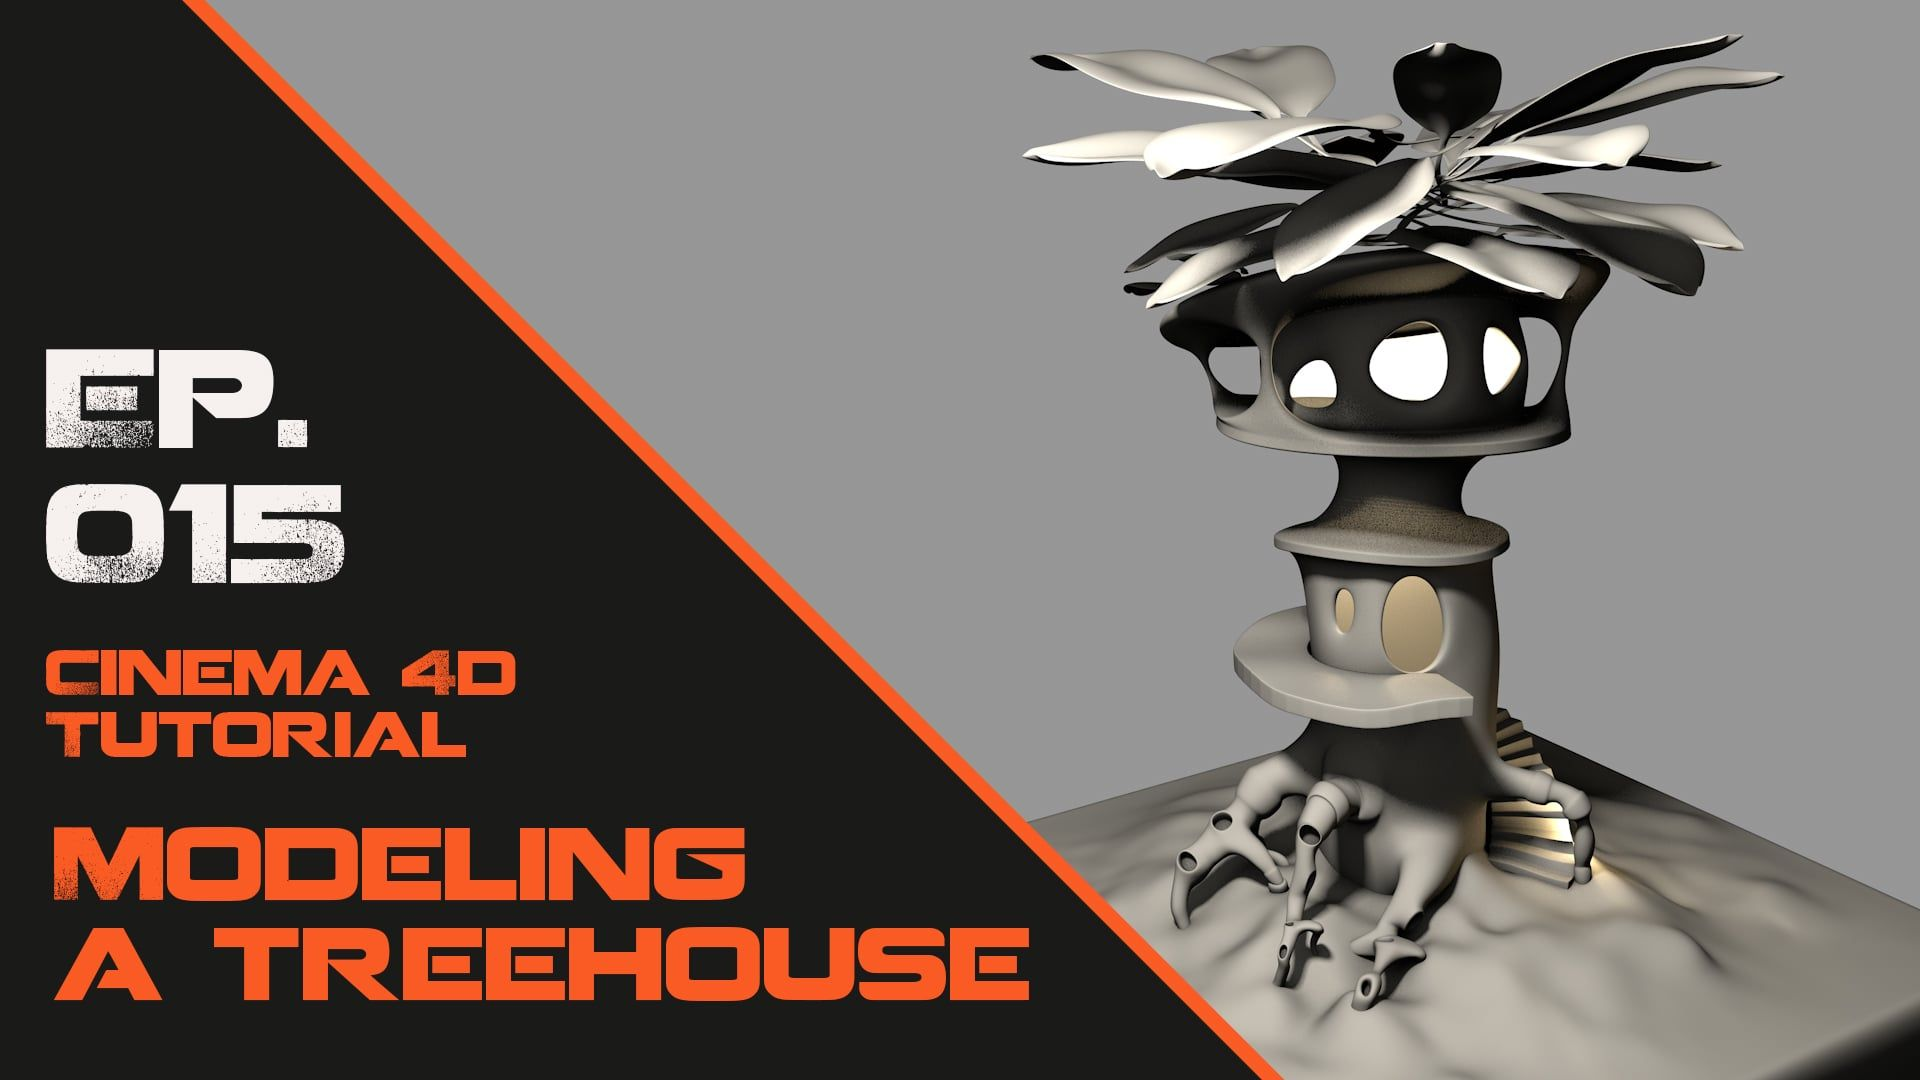 Character Design Cinema 4d Tutorial : Model a treehouse in cinema d tutorial tutoriels